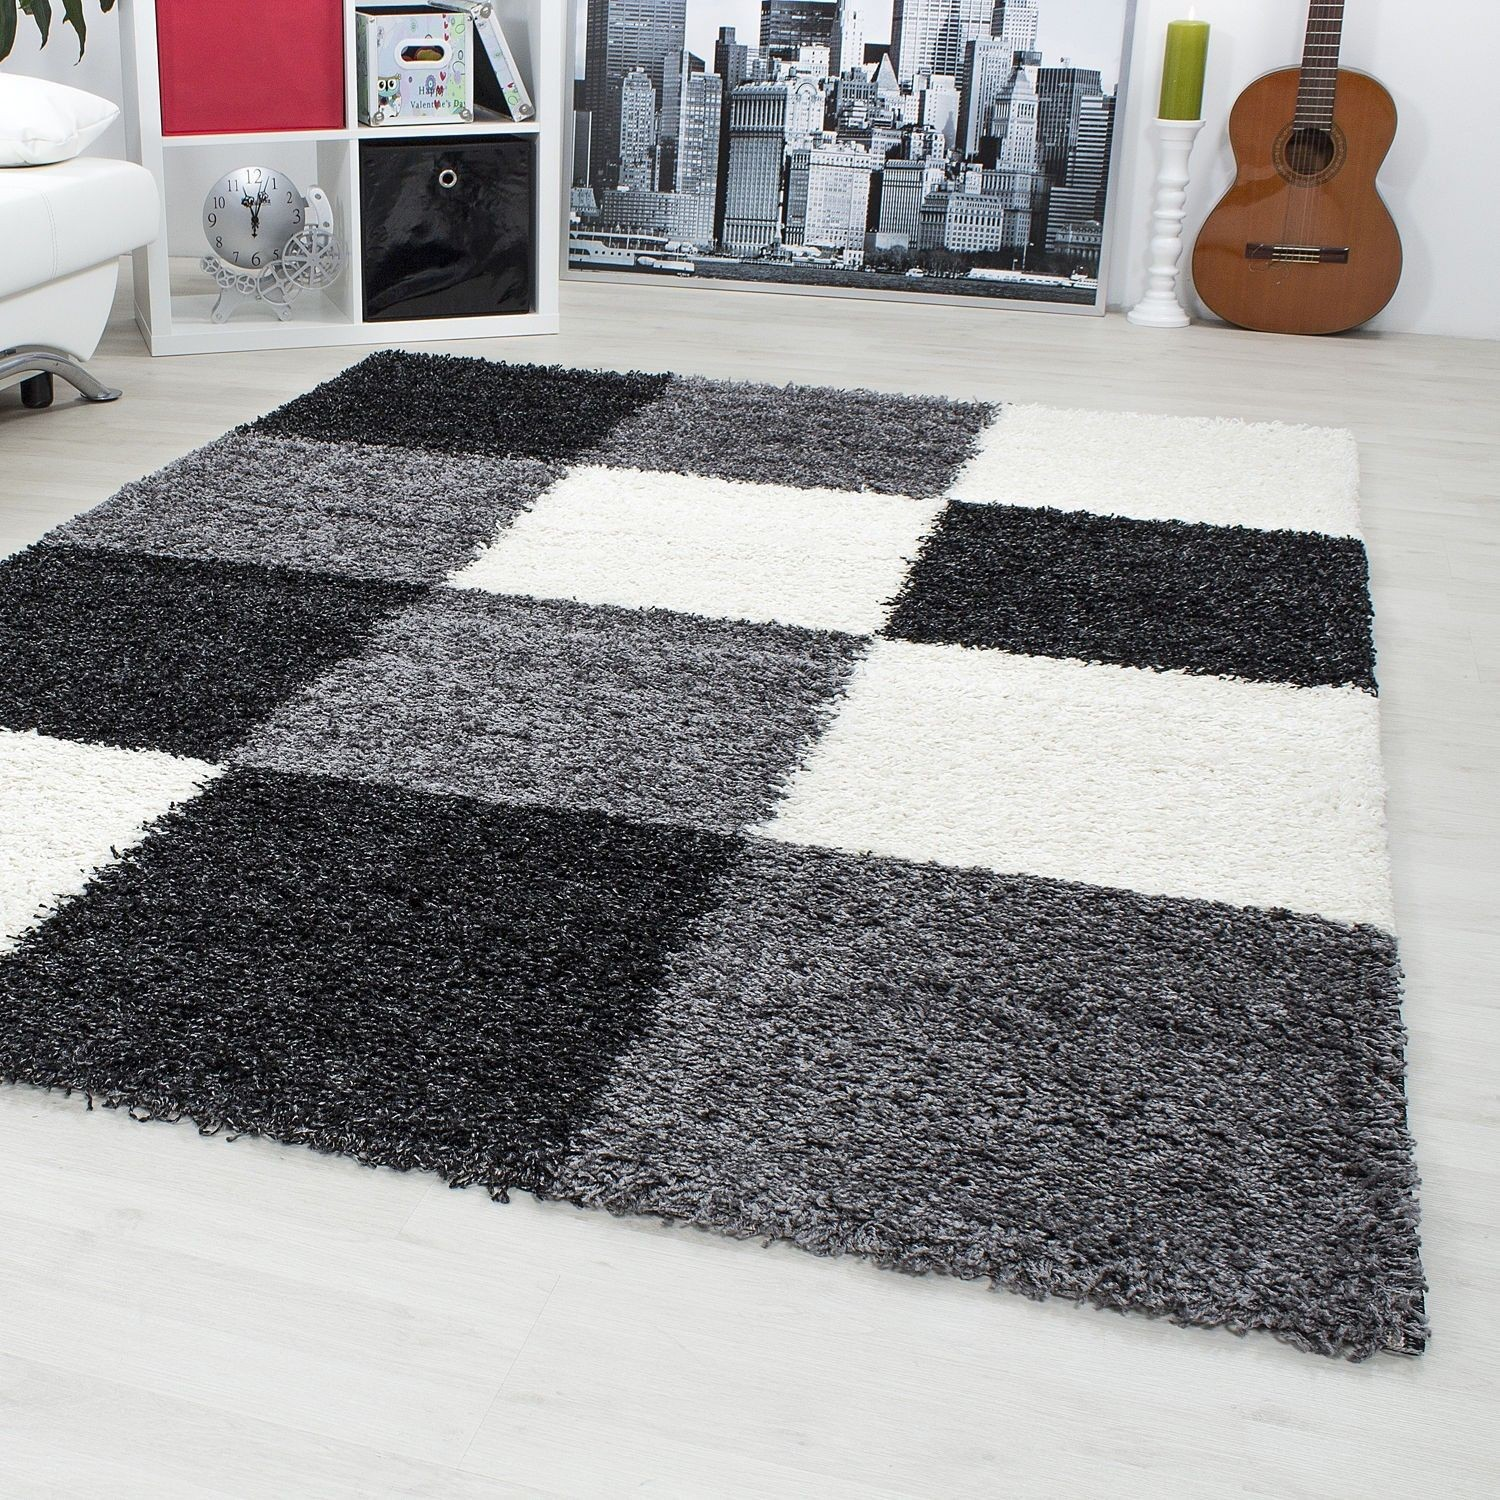 free carrelage design tapis noir et blanc pas cher tapis shaggy blanc pas with tapis shaggy fushia. Black Bedroom Furniture Sets. Home Design Ideas